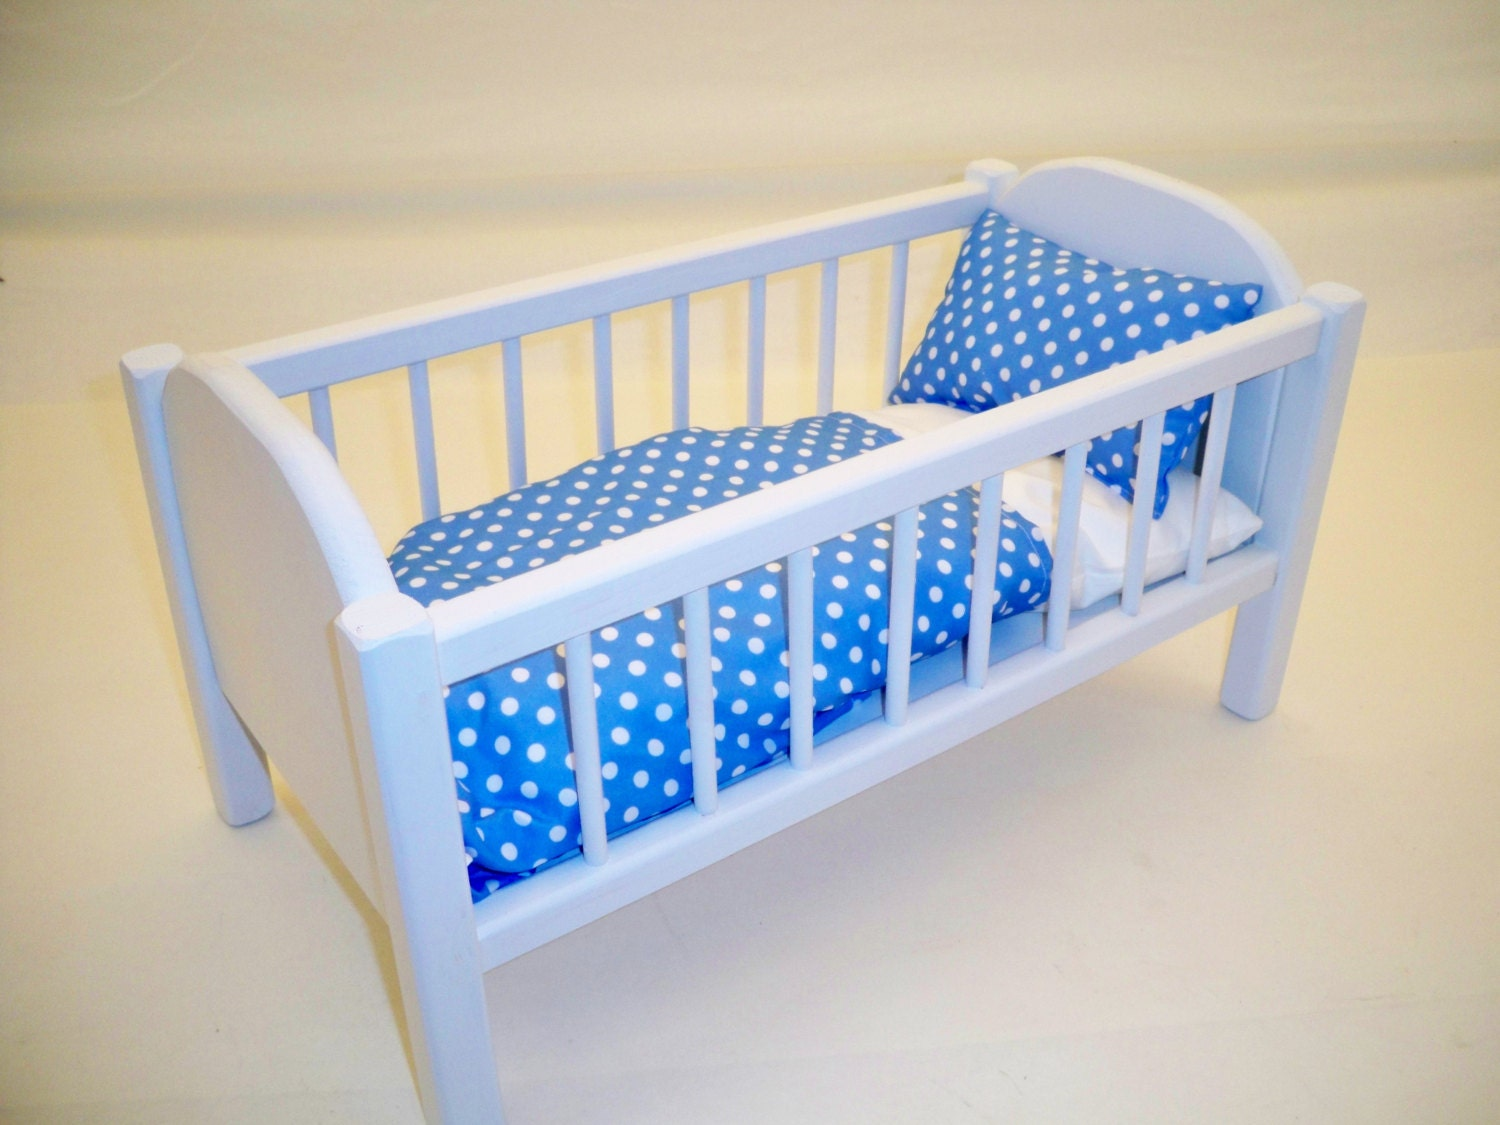 Baby cribs in ghana - Doll Crib Wood Doll Crib Wood Doll Bed American Doll Bed Girls Toy 18inch Doll Bed Baby Doll Crib Baby Doll Bed